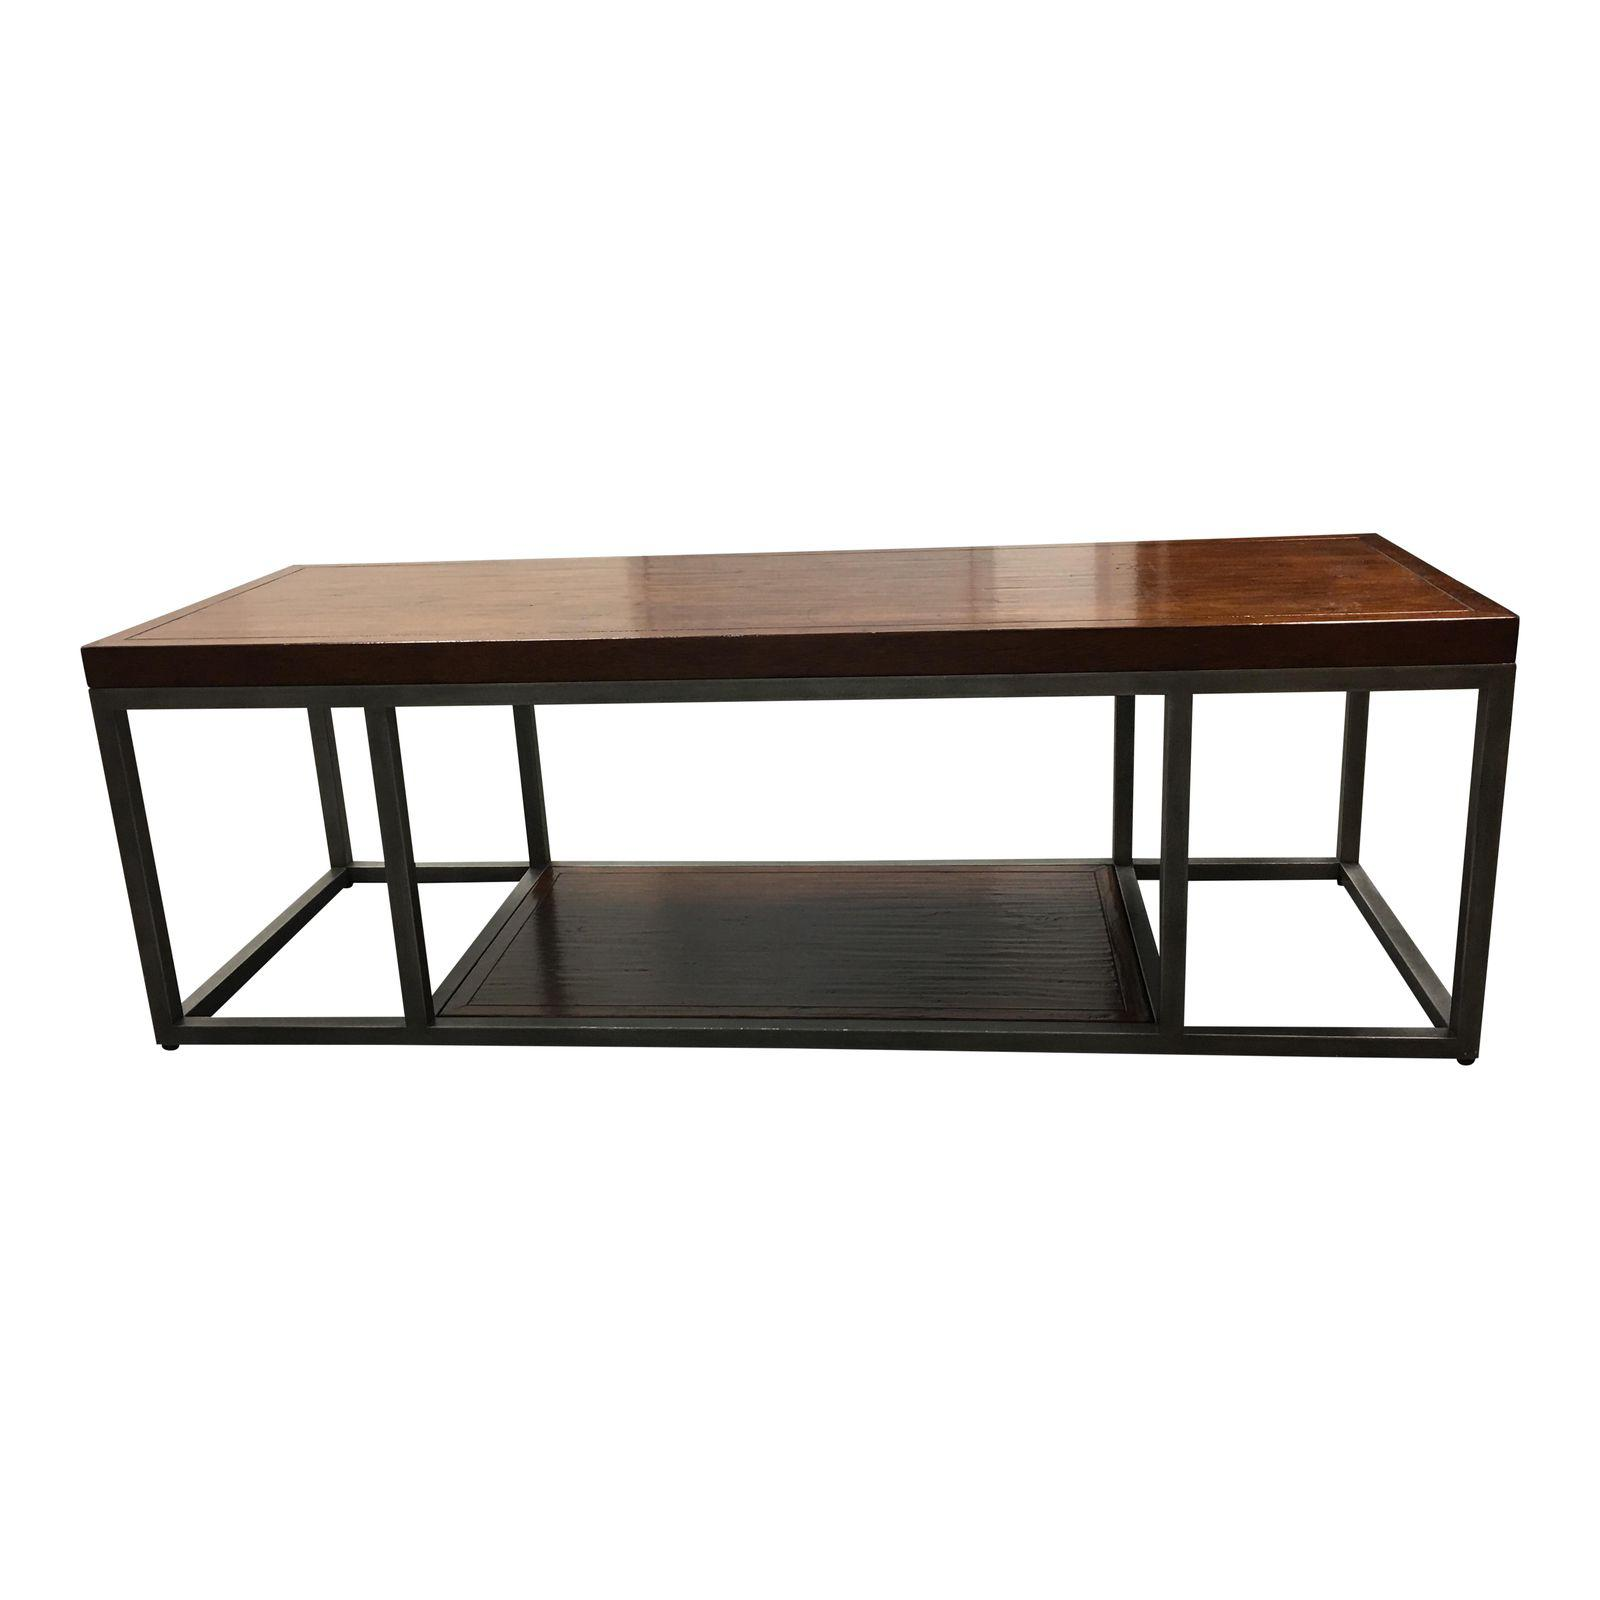 Henredon wood metal coffee table design plus gallery henredon wood metal coffee table geotapseo Image collections